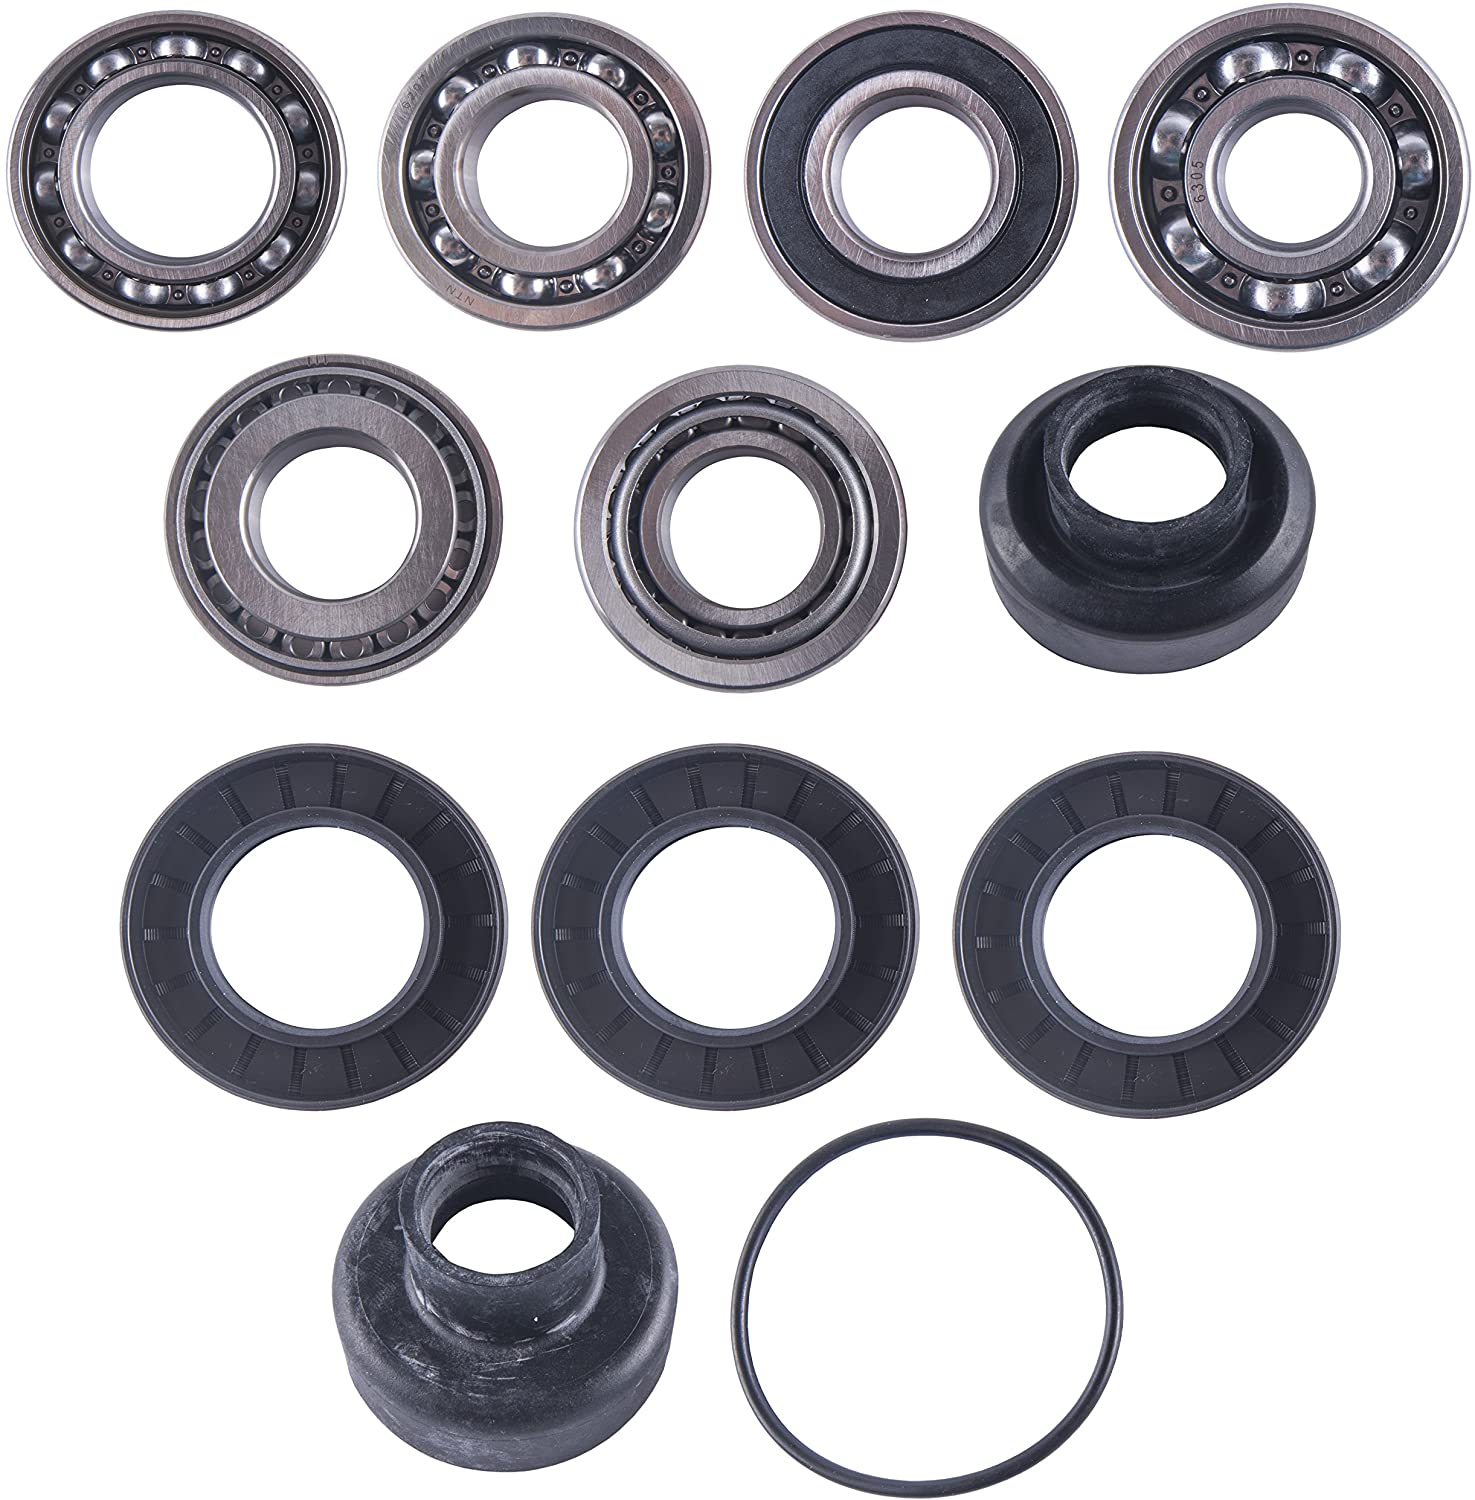 East Lake Axle rear differential bearing & seal kit compatible with Yamaha 550/700 Grizzly 2007 2008 09-2015